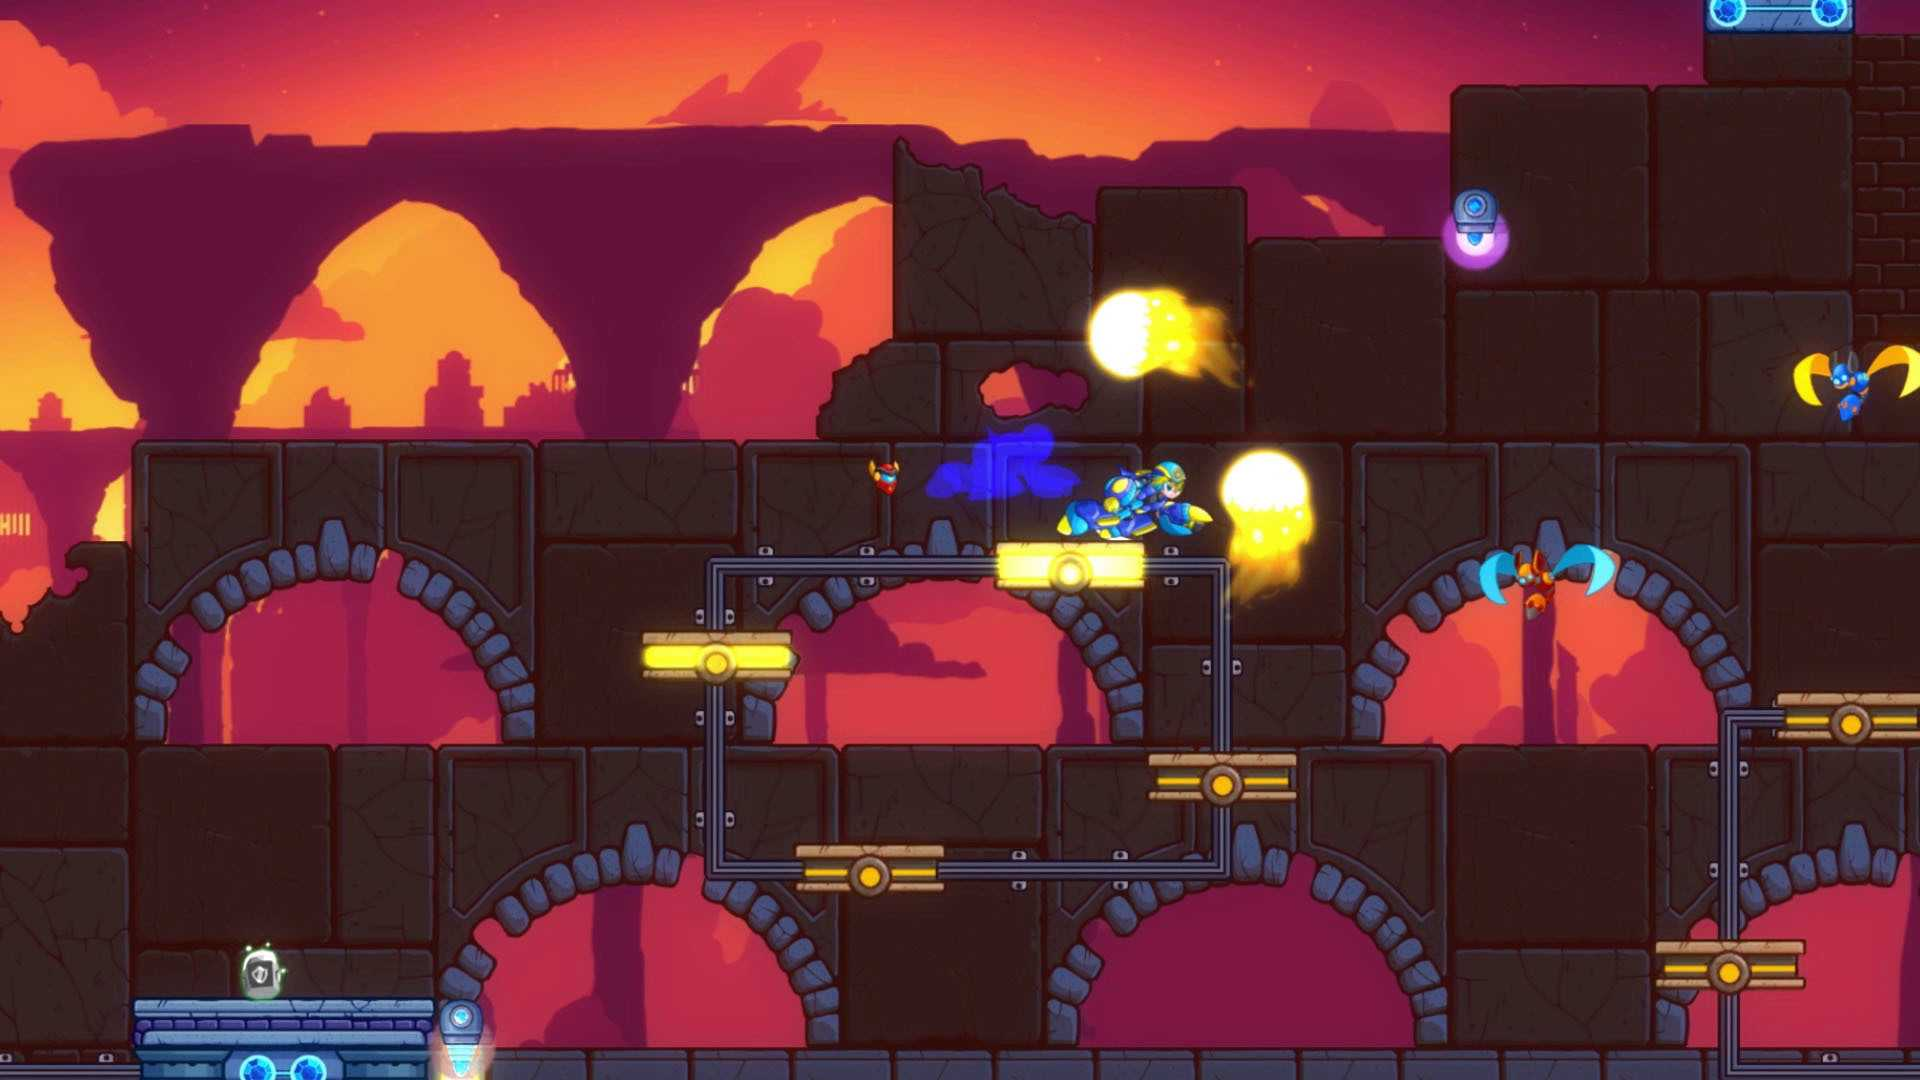 20XX Review - Robot Generation